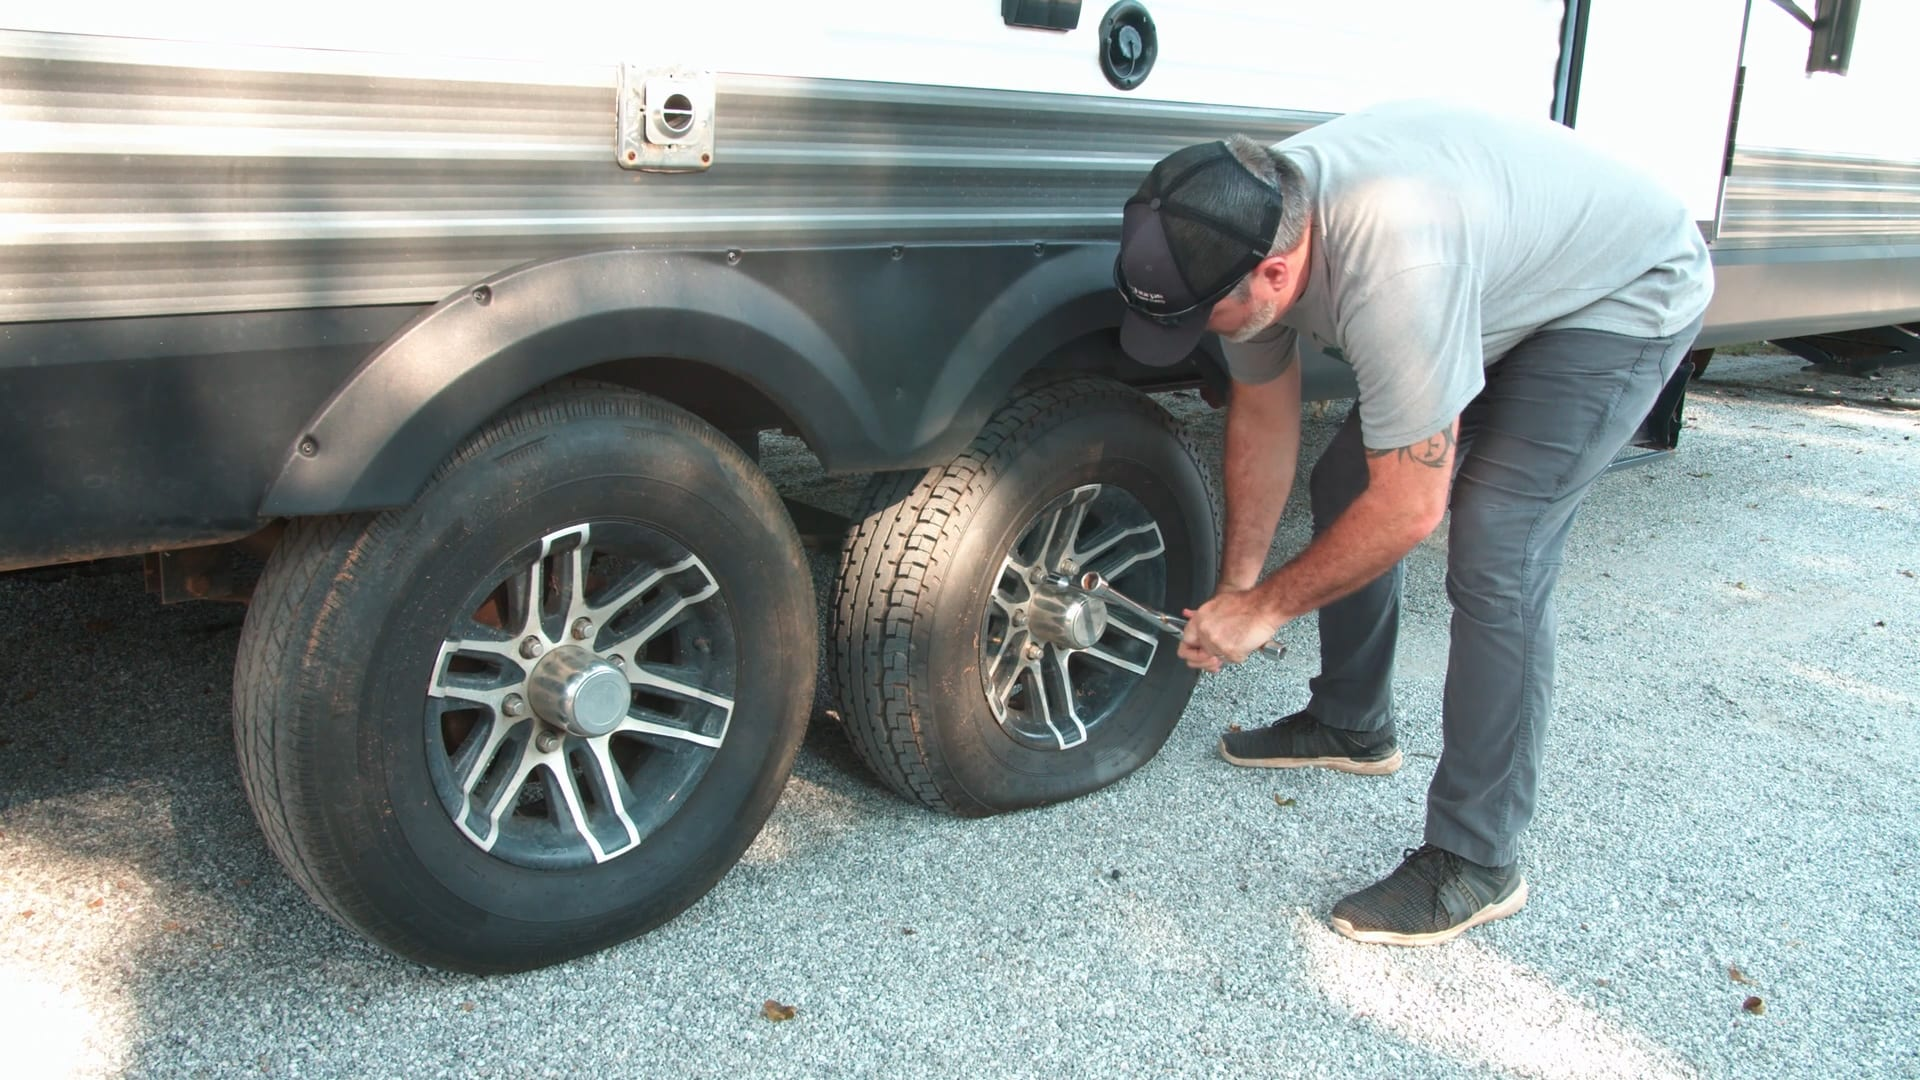 How to Change a Flat Tire on Your RV